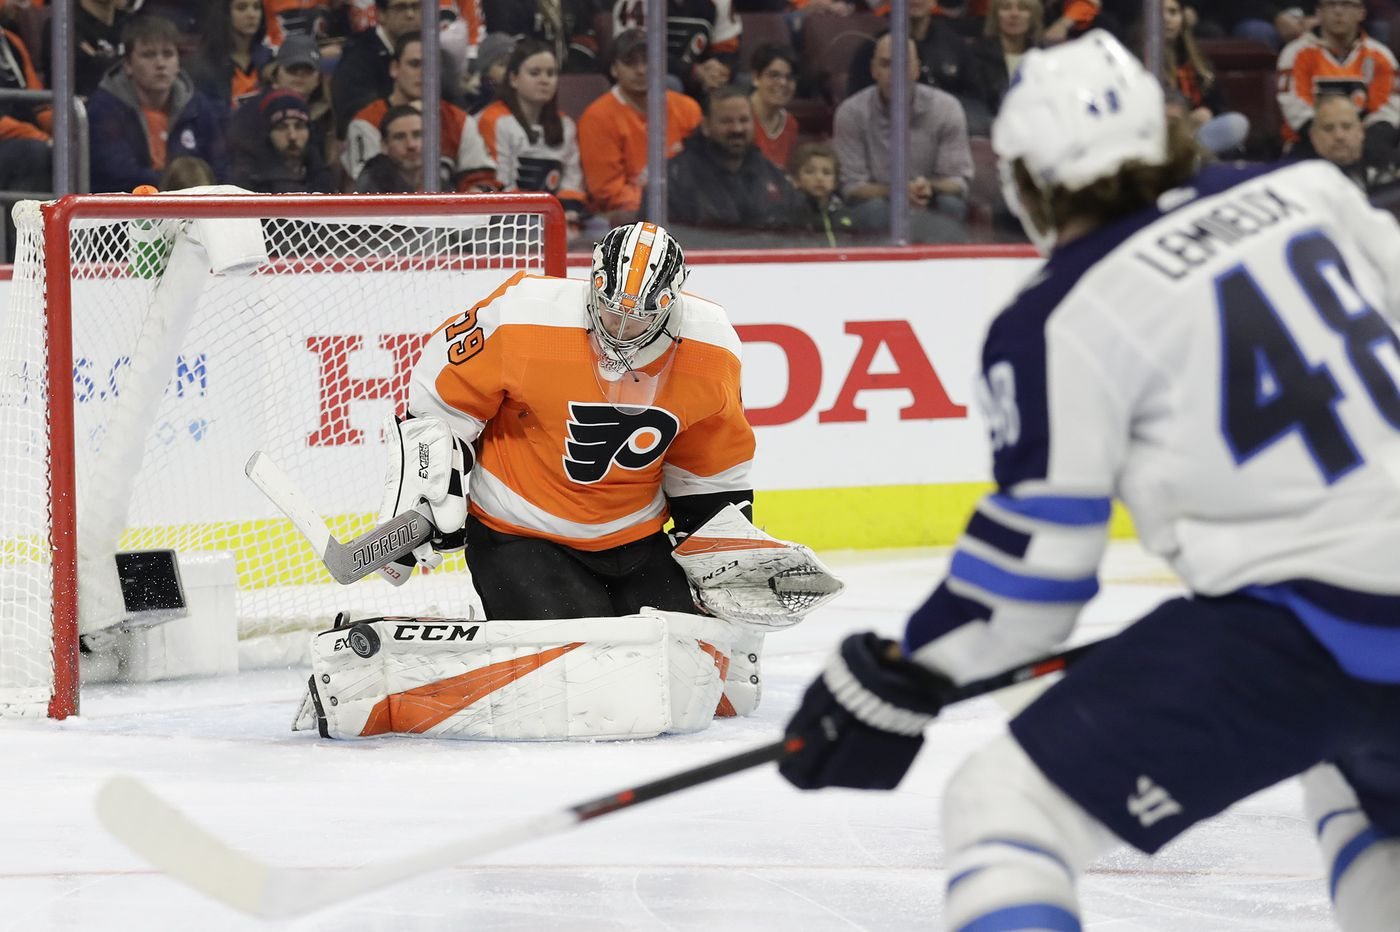 Carter Hart, Travis Konecny lead Flyers past Jets for 4th straight win